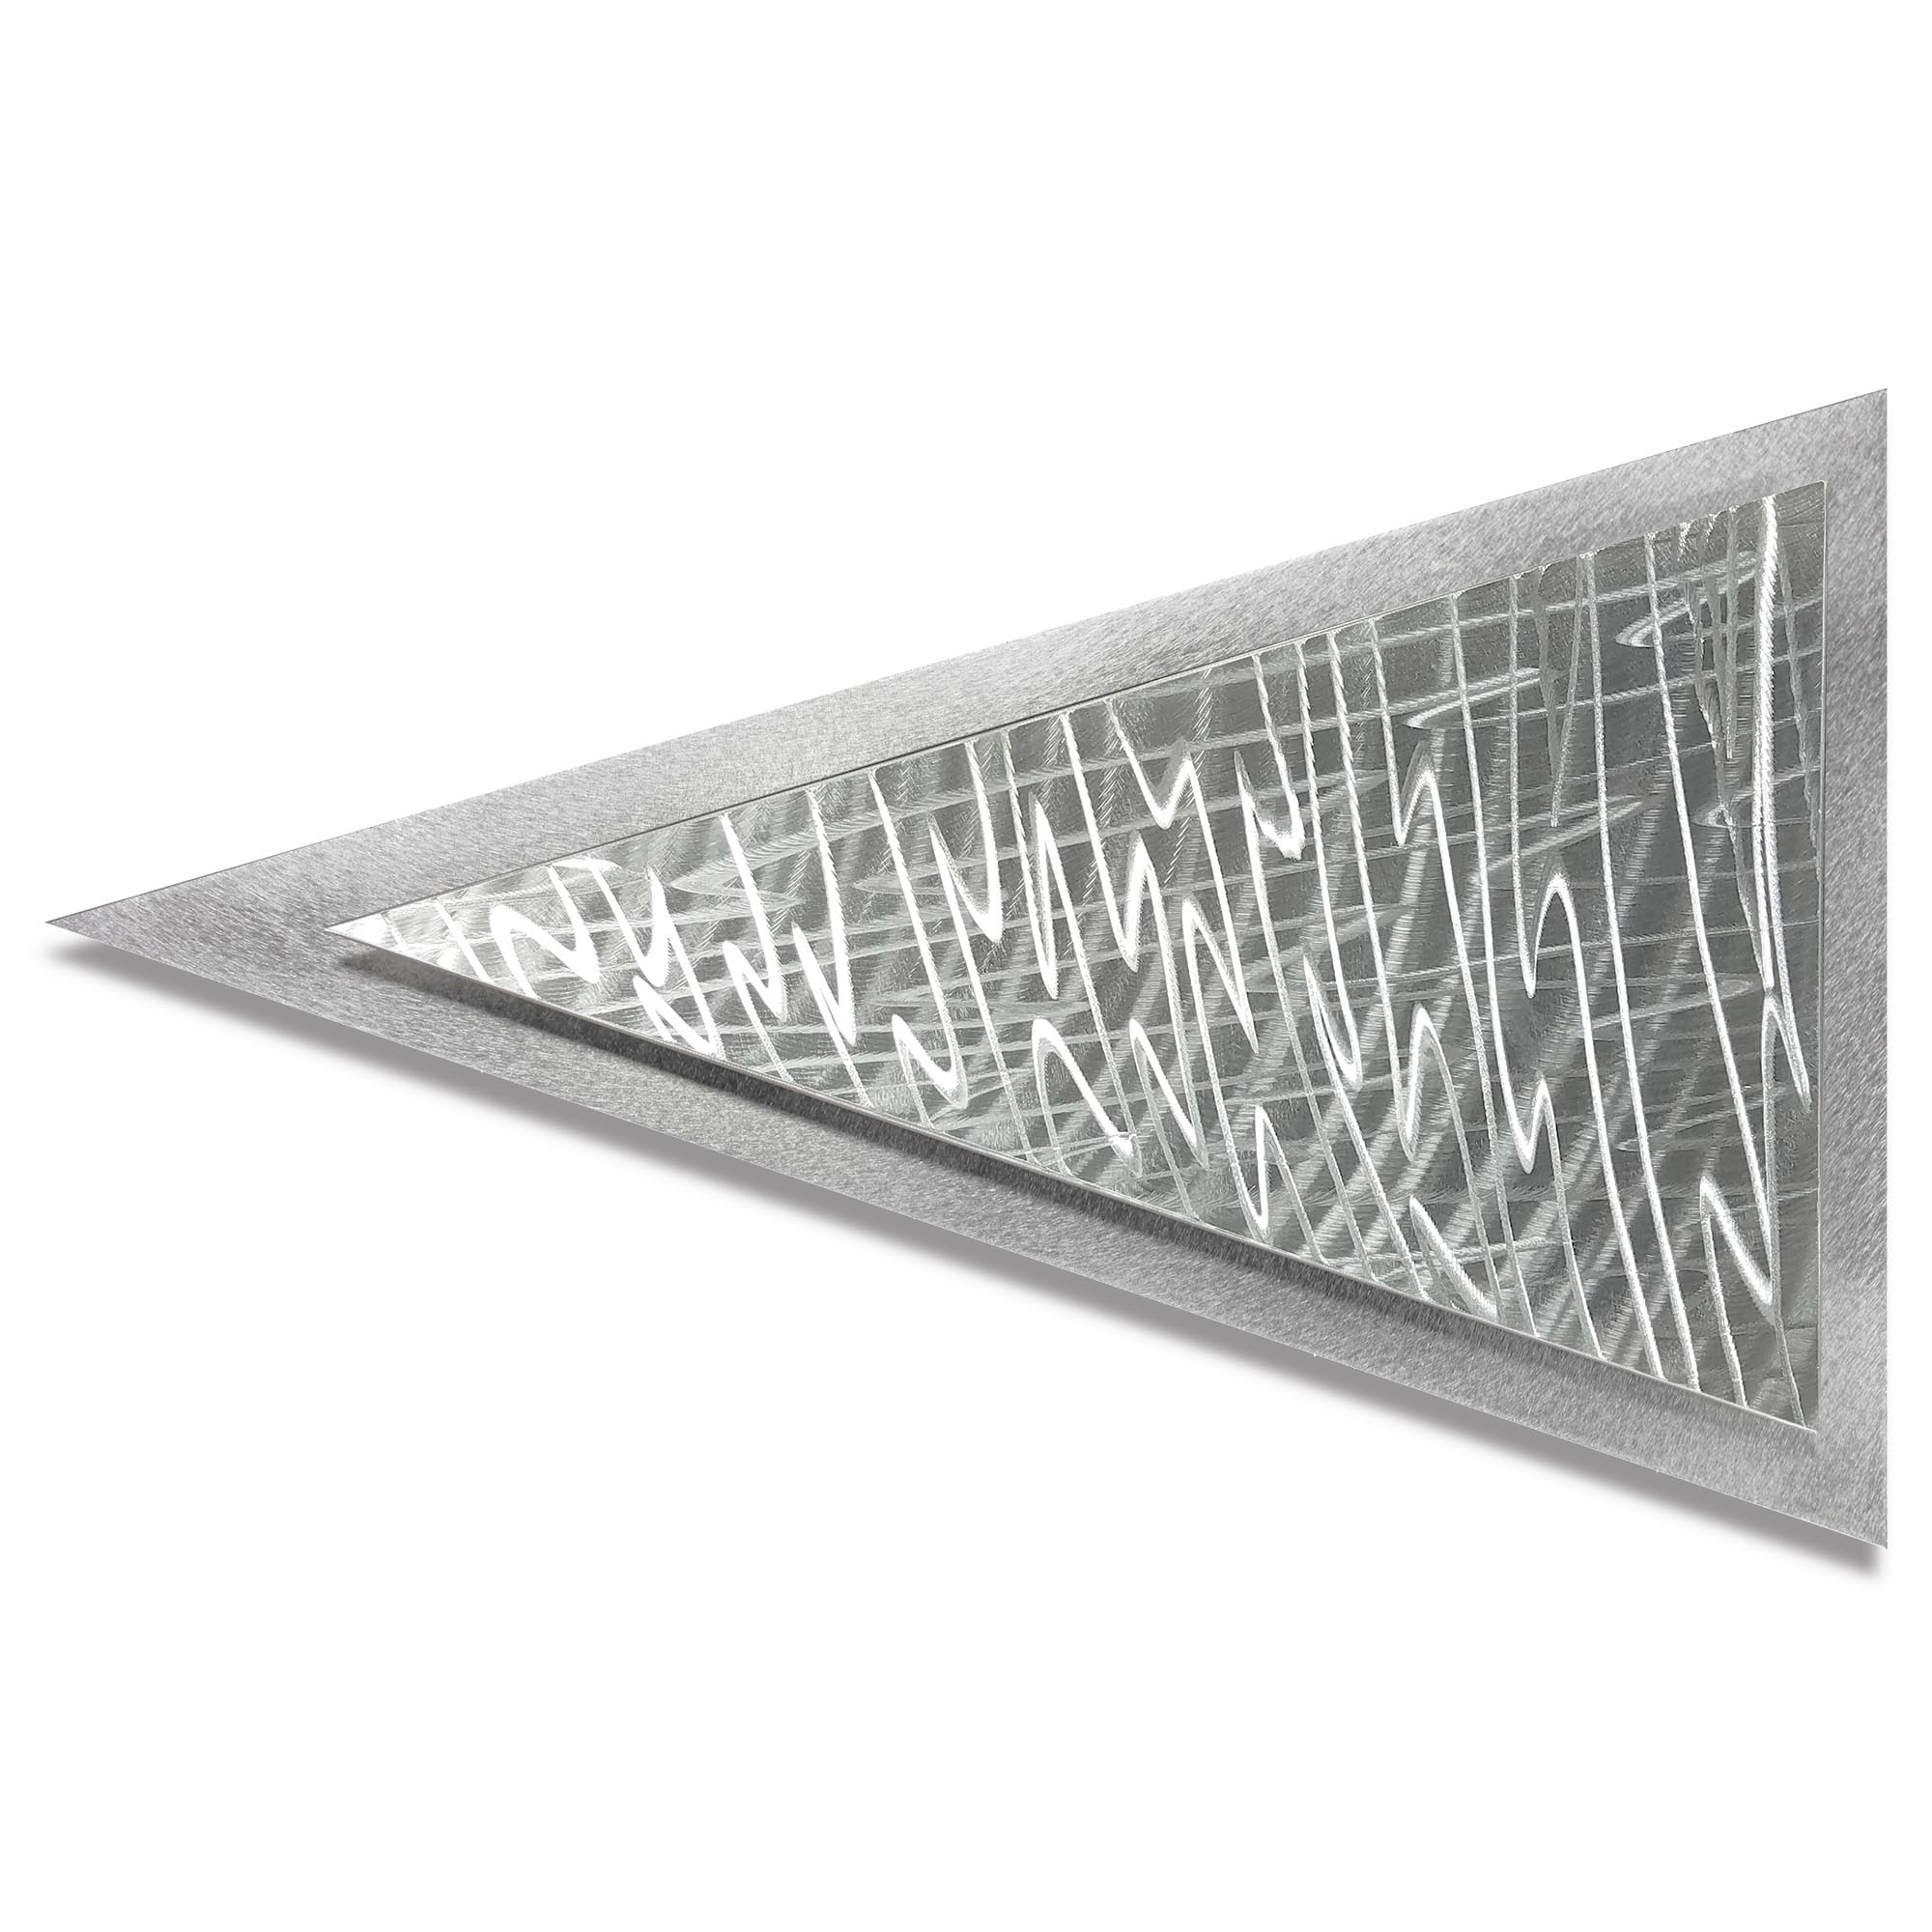 Helena Martin 'Frequency Arrow' 24in x 15in Modern Metal Art on Ground Metal